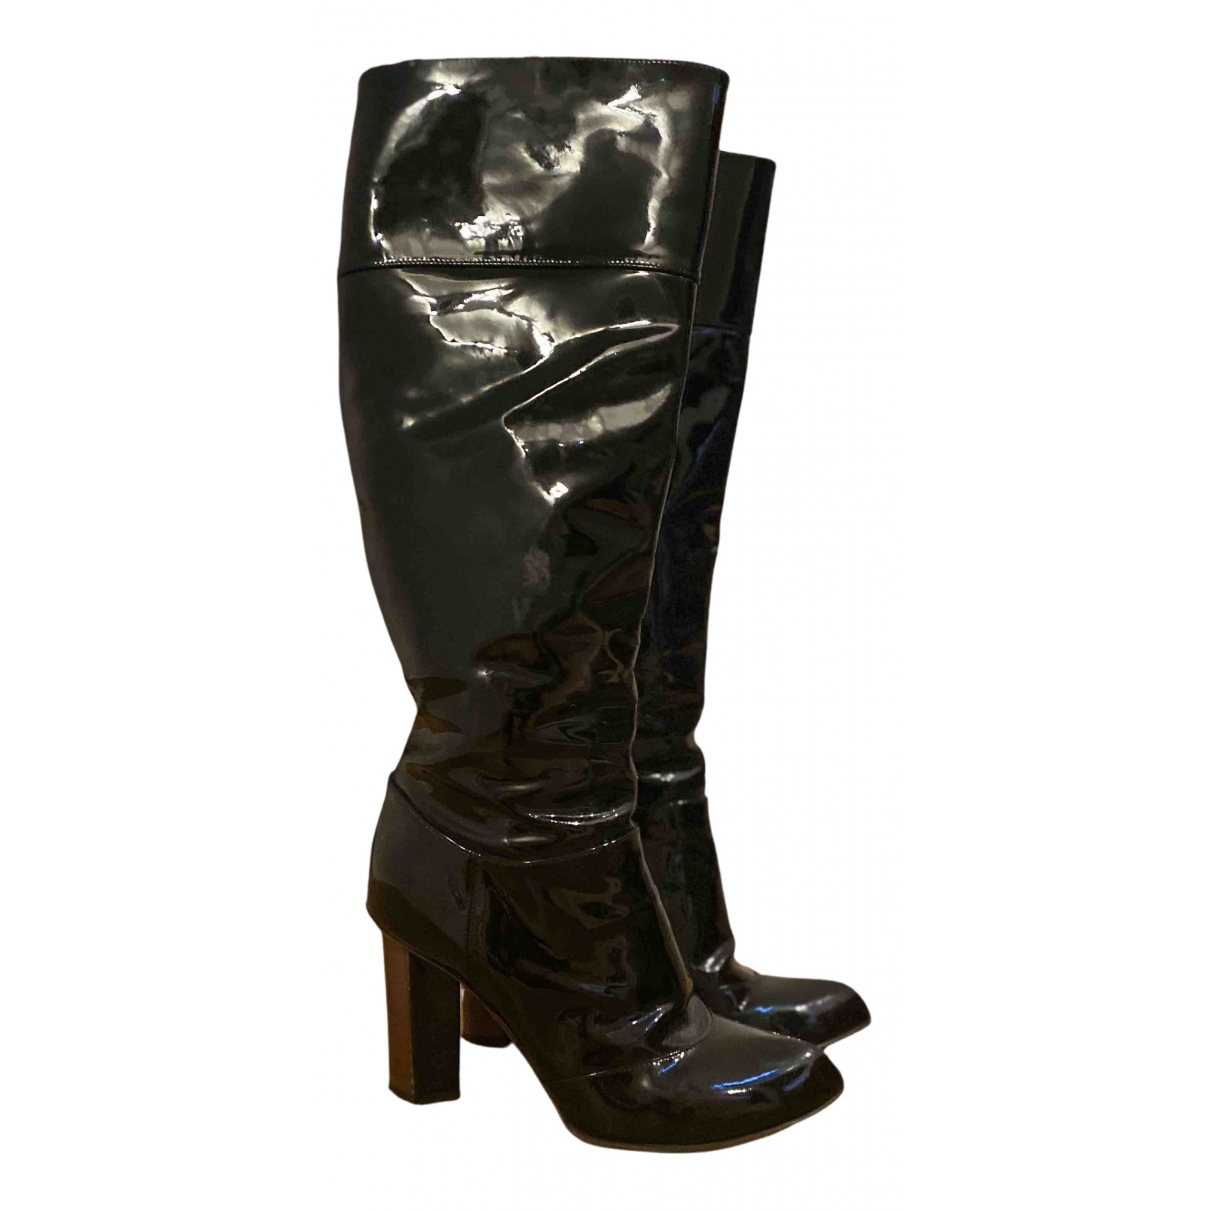 Dolce & Gabbana N Black Patent leather Boots for Women 38.5 EU